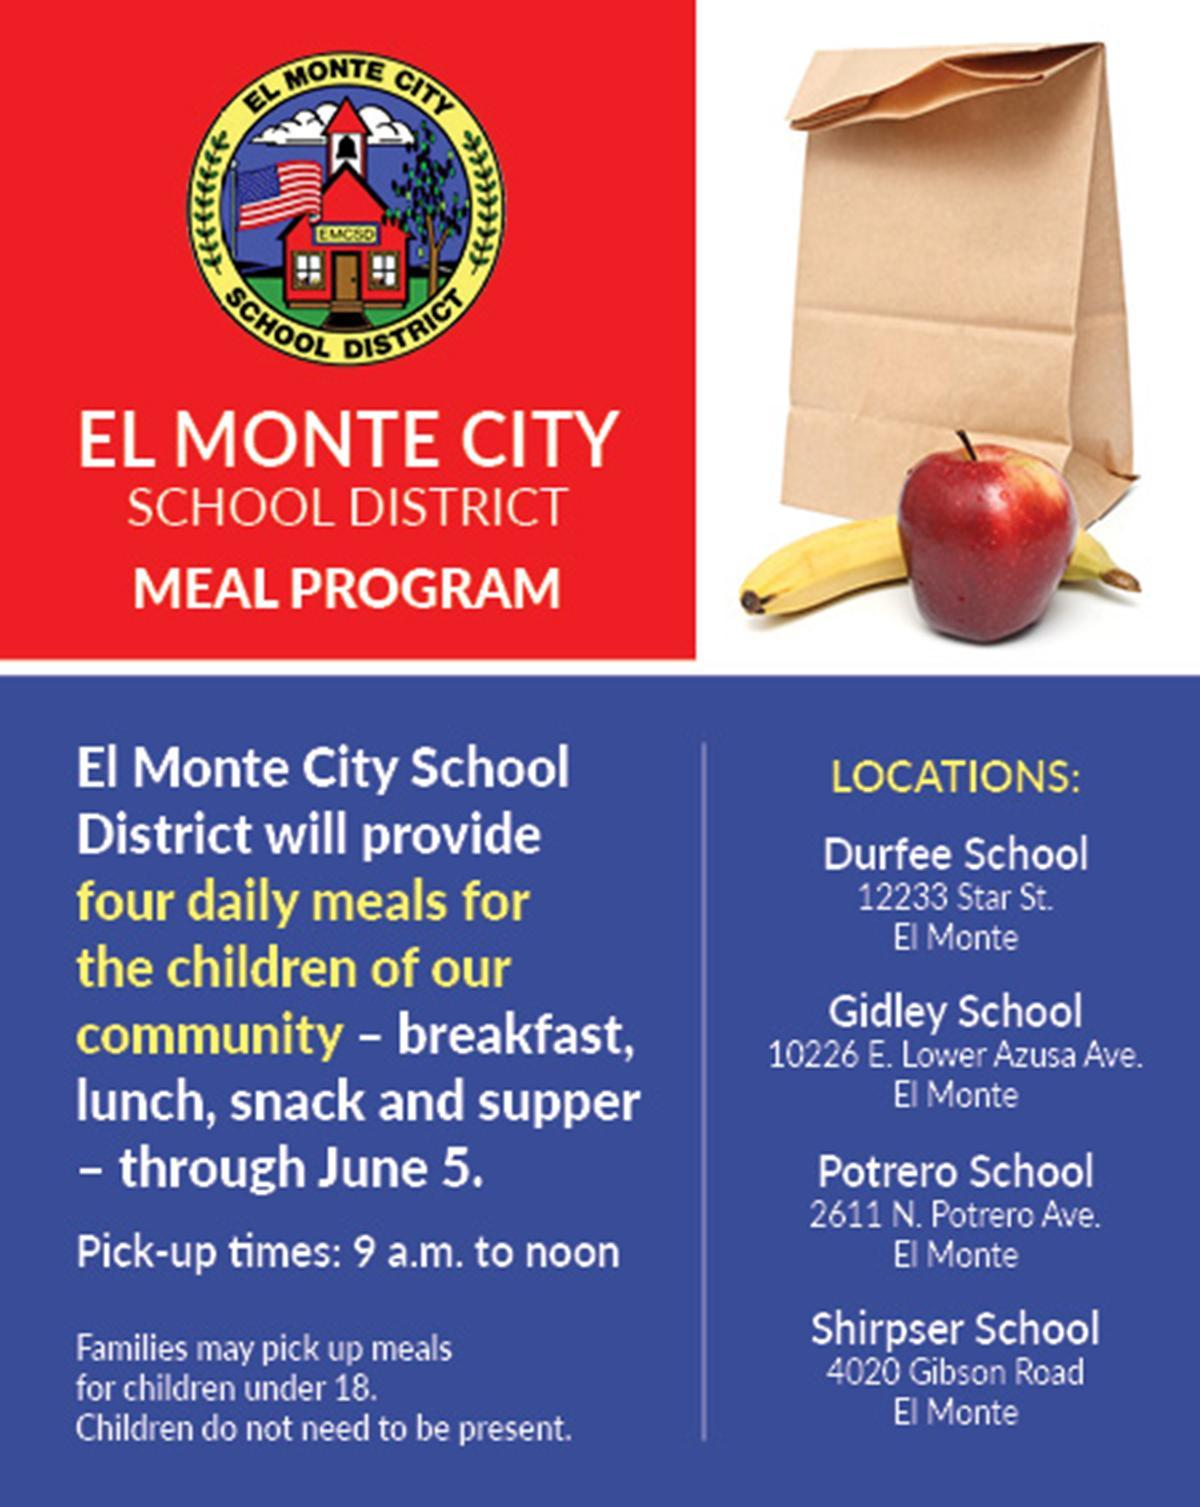 Meal program at a glance